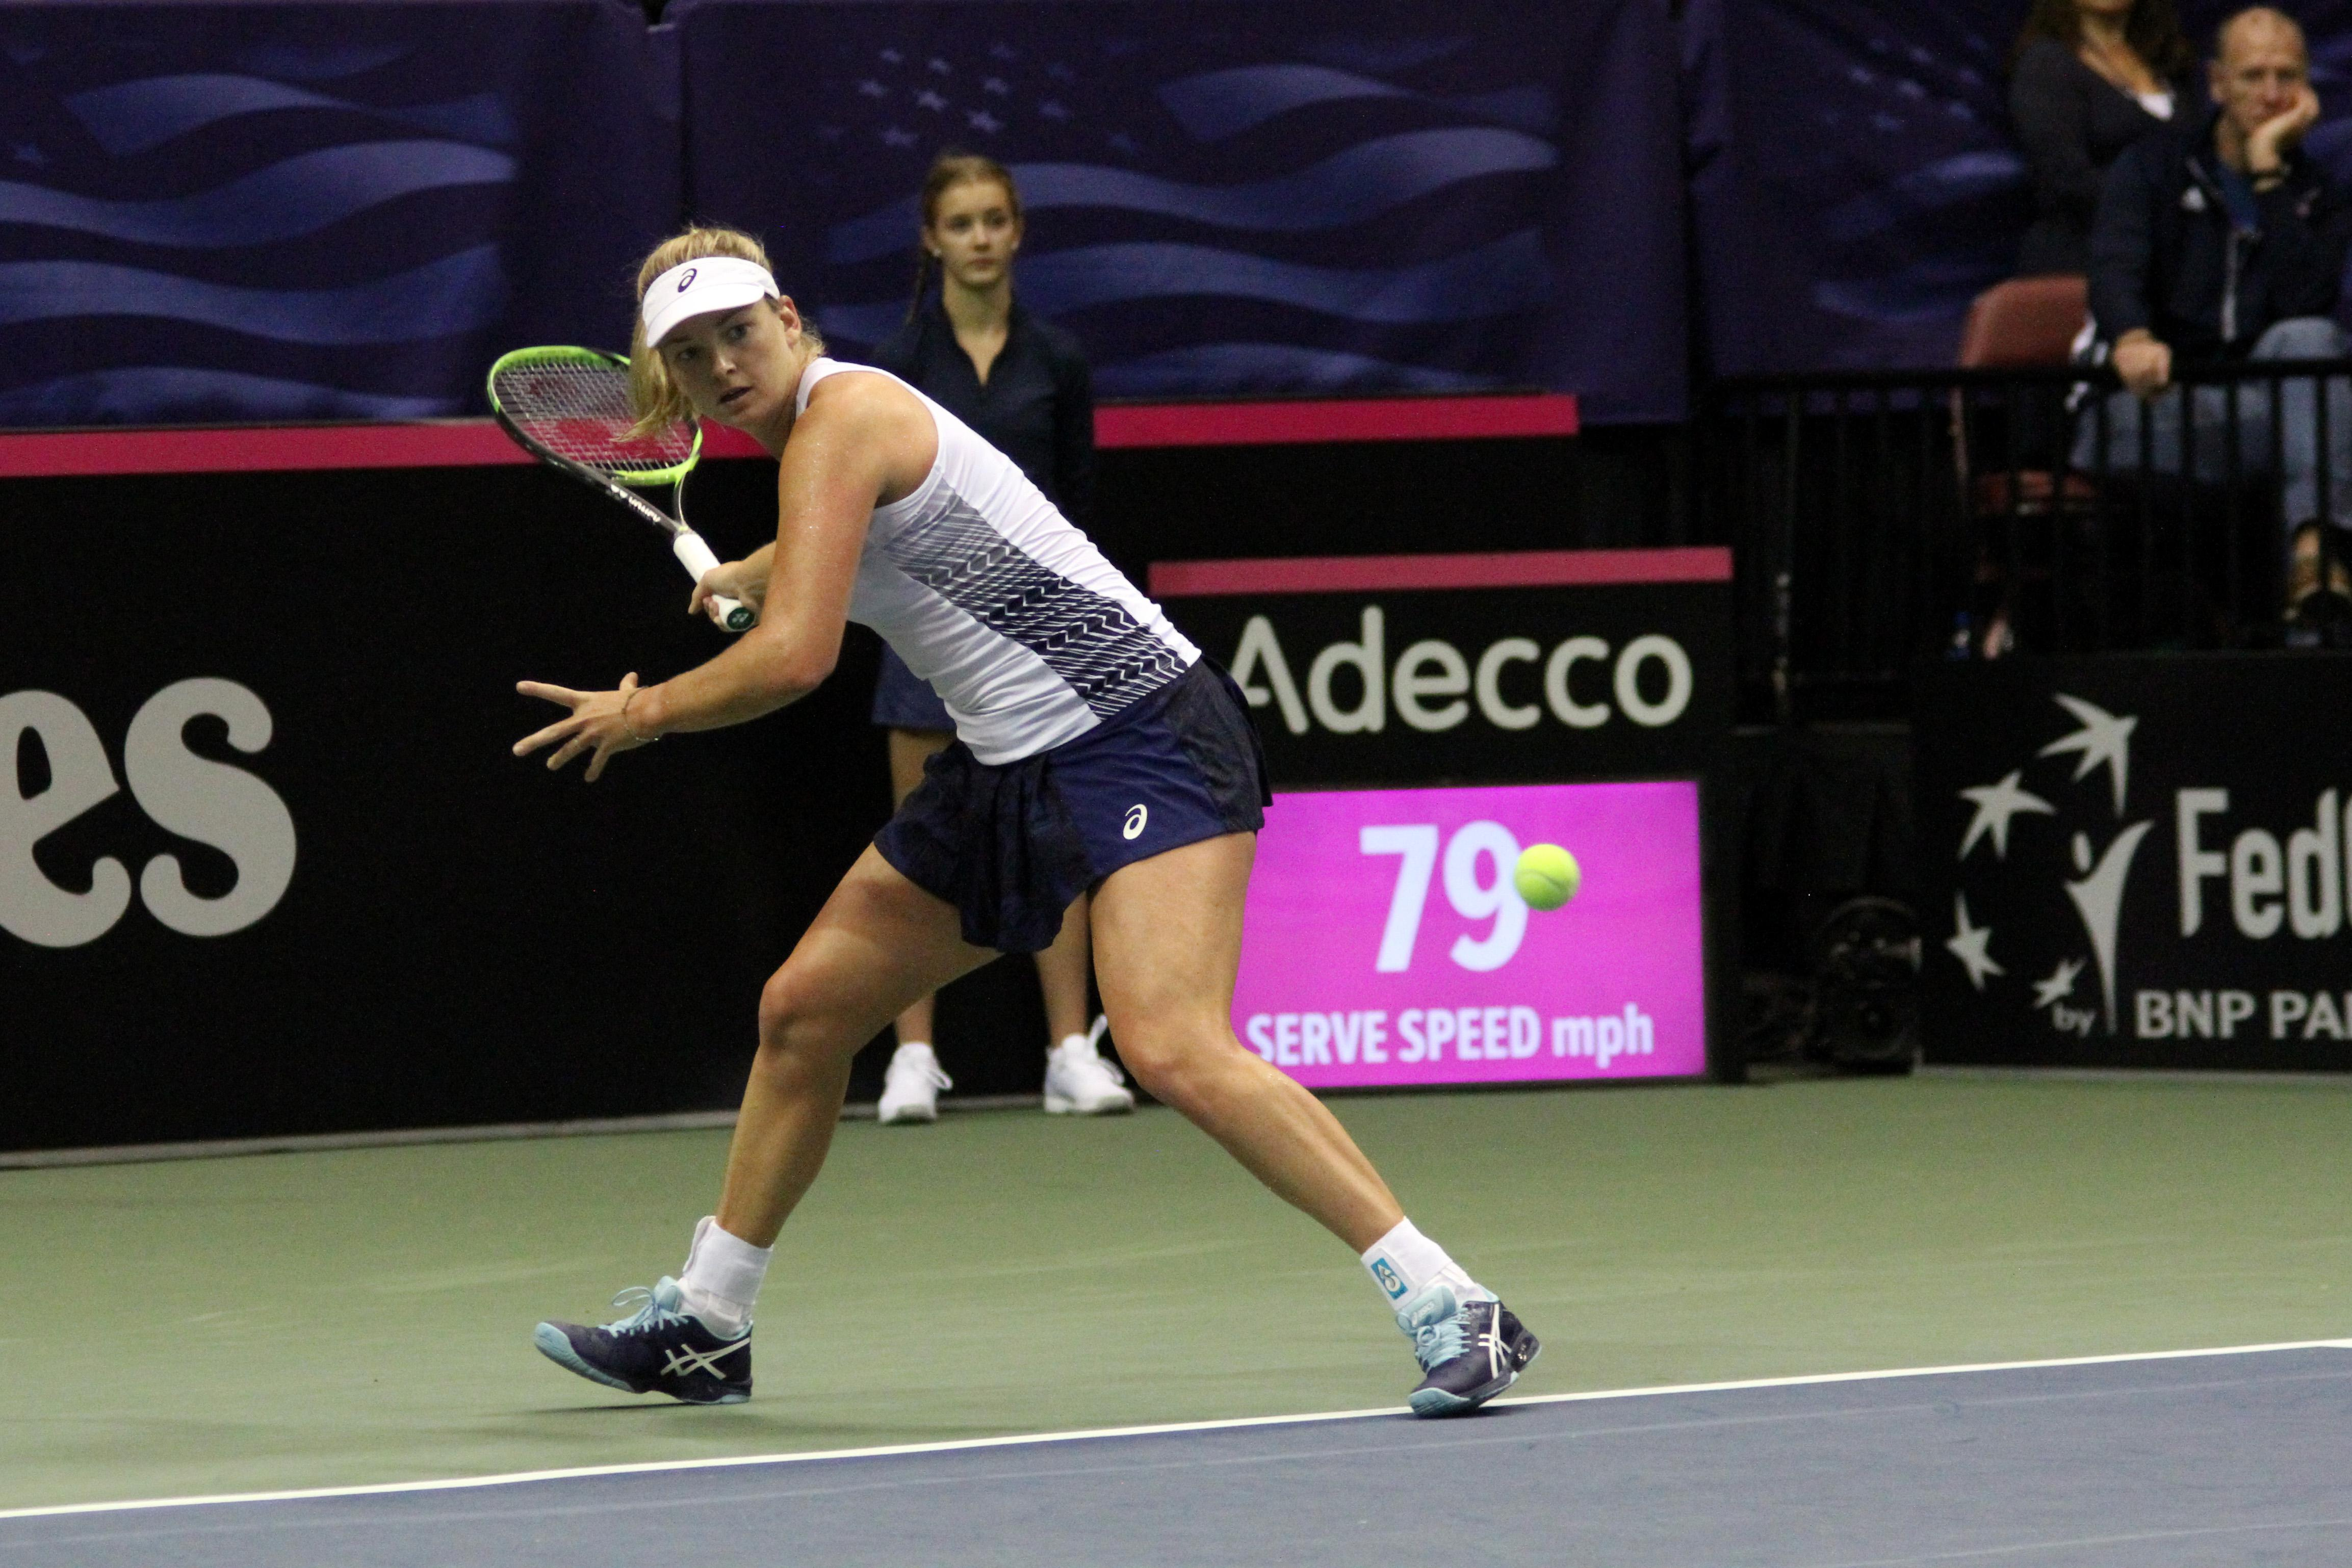 CoCo Vandeweghe plays for Team USA in the second singles match of the Fed Cup on Feb. 10, 2018. Vandeweghe went on to defeat Netherland's Richel Hogenkamp. (Photo credit: WLOS Staff)